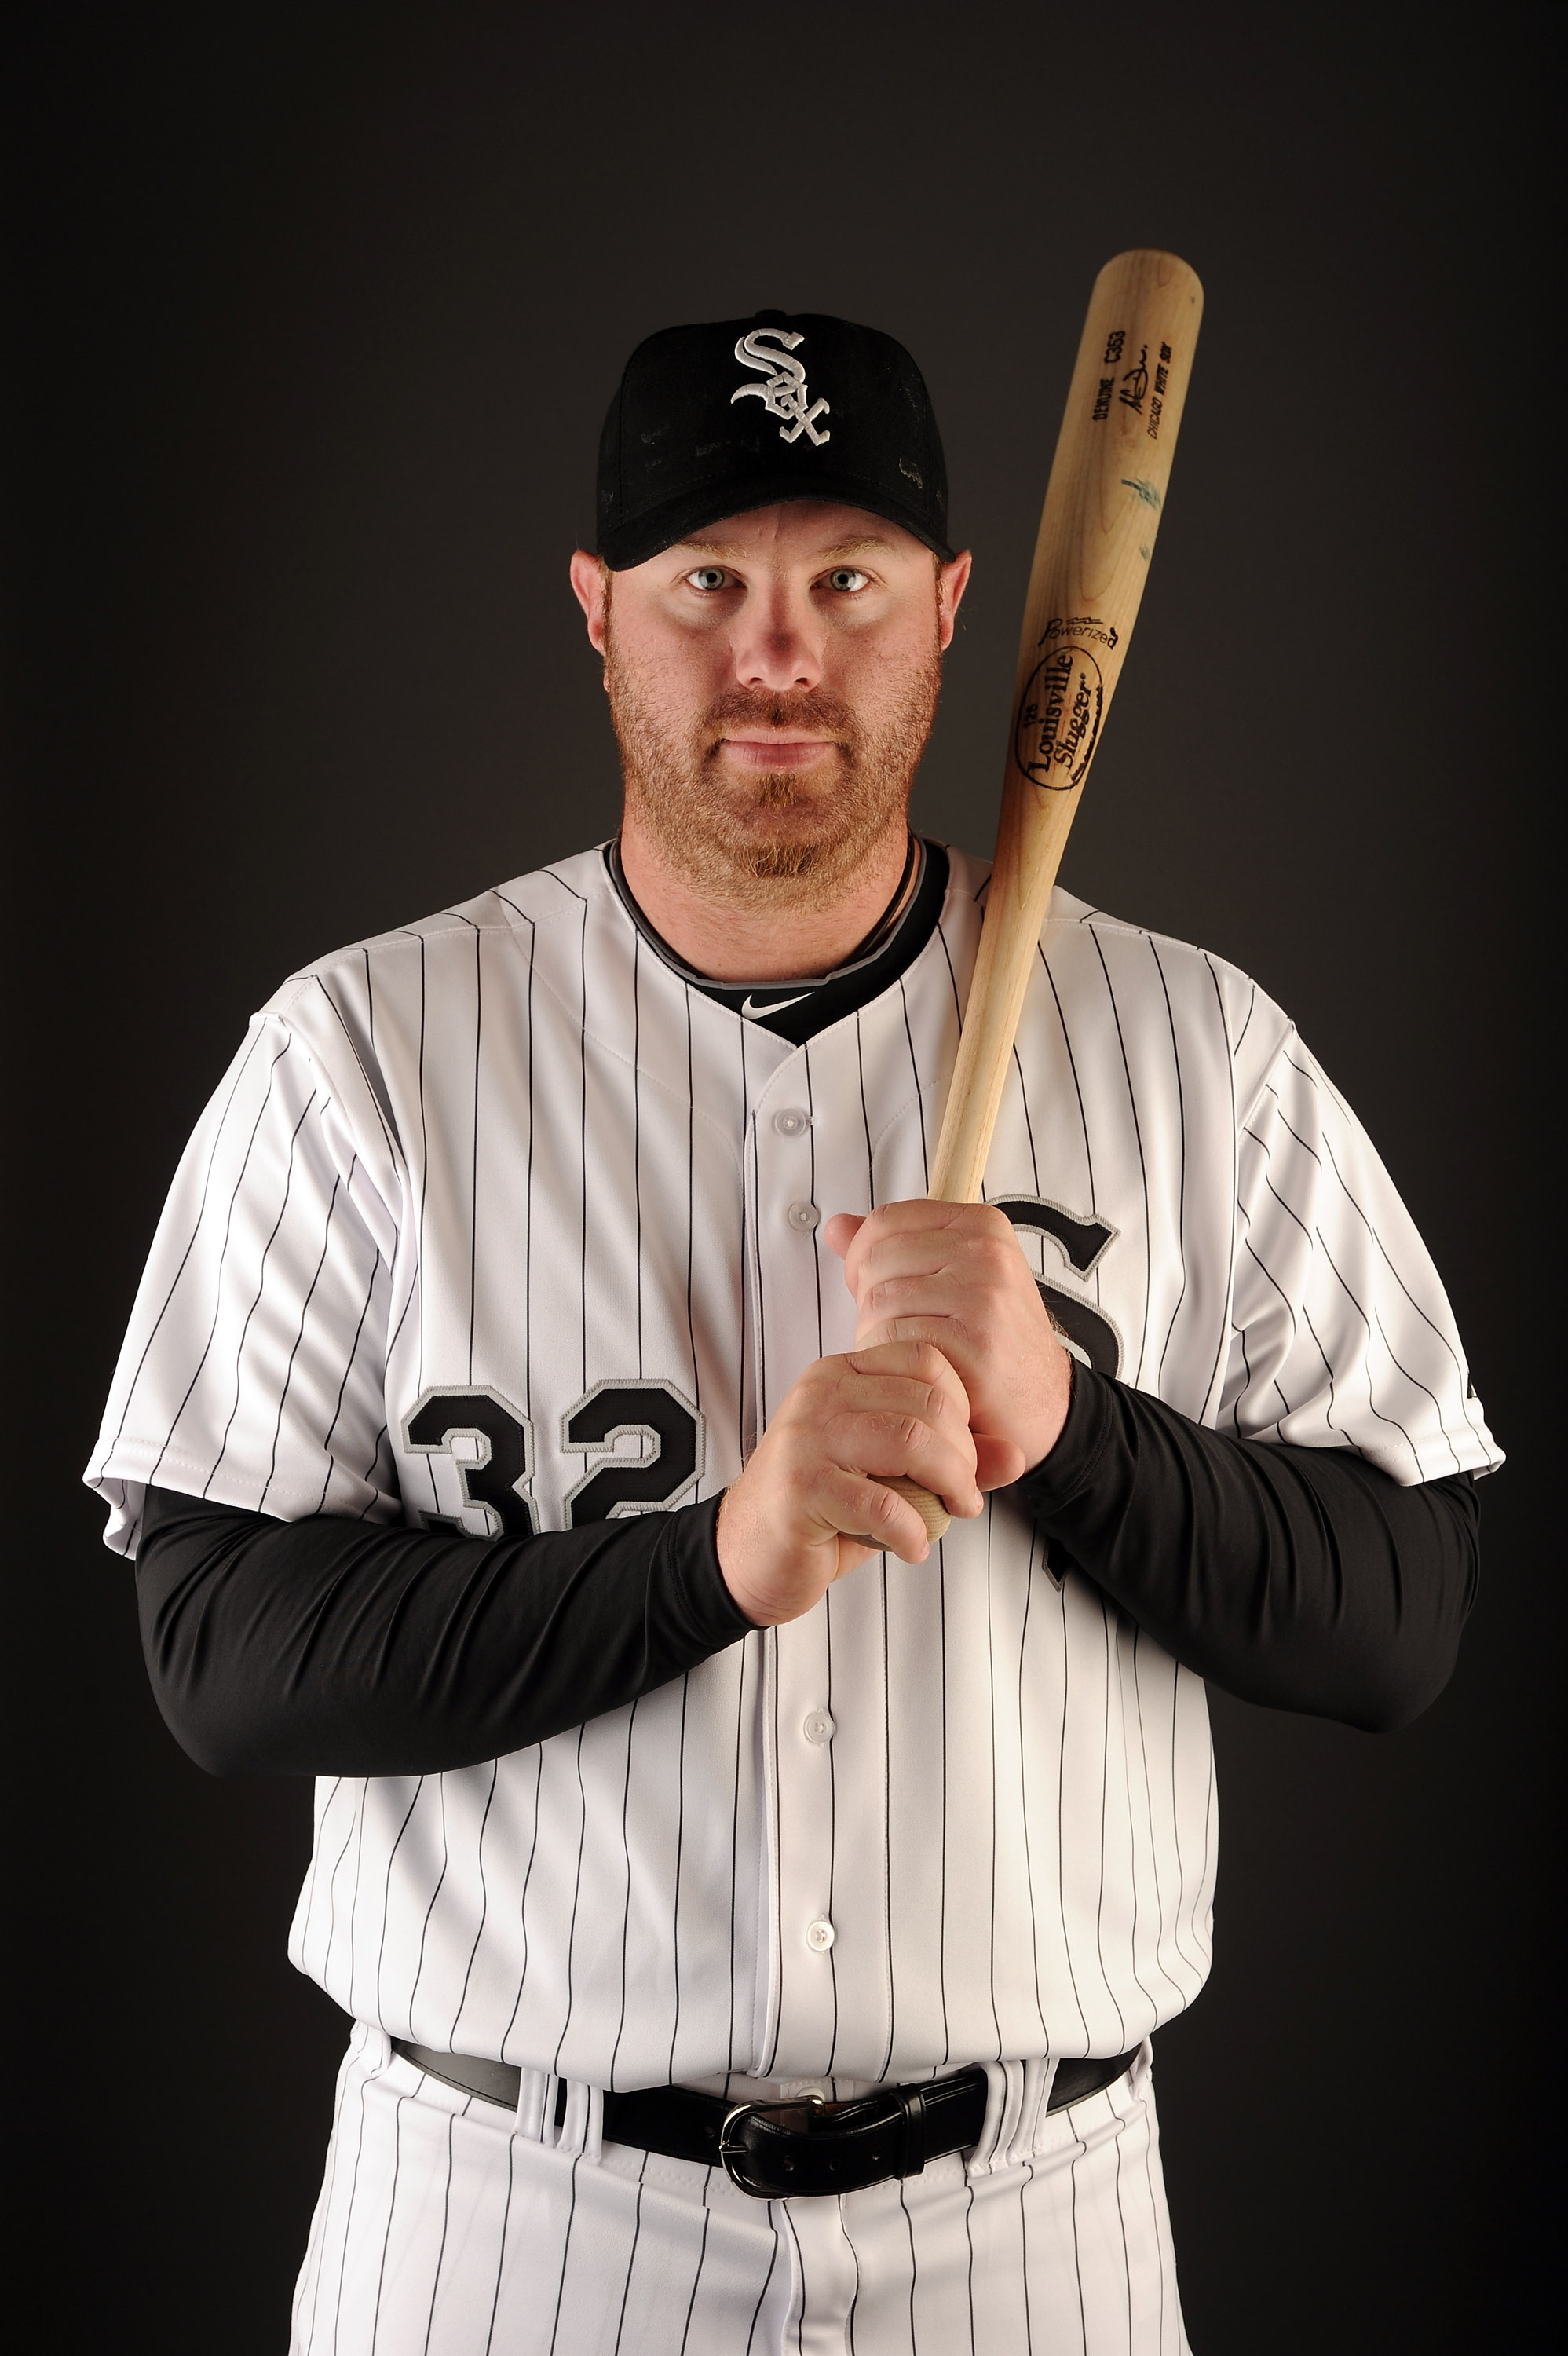 GLENDALE, AZ - FEBRUARY 26:  Adam Dunn #32 of the Chicago White Sox poses for a photo on photo day at Camelback Ranch on February 26, 2011 in Glendale, Arizona.  (Photo by Harry How/Getty Images)